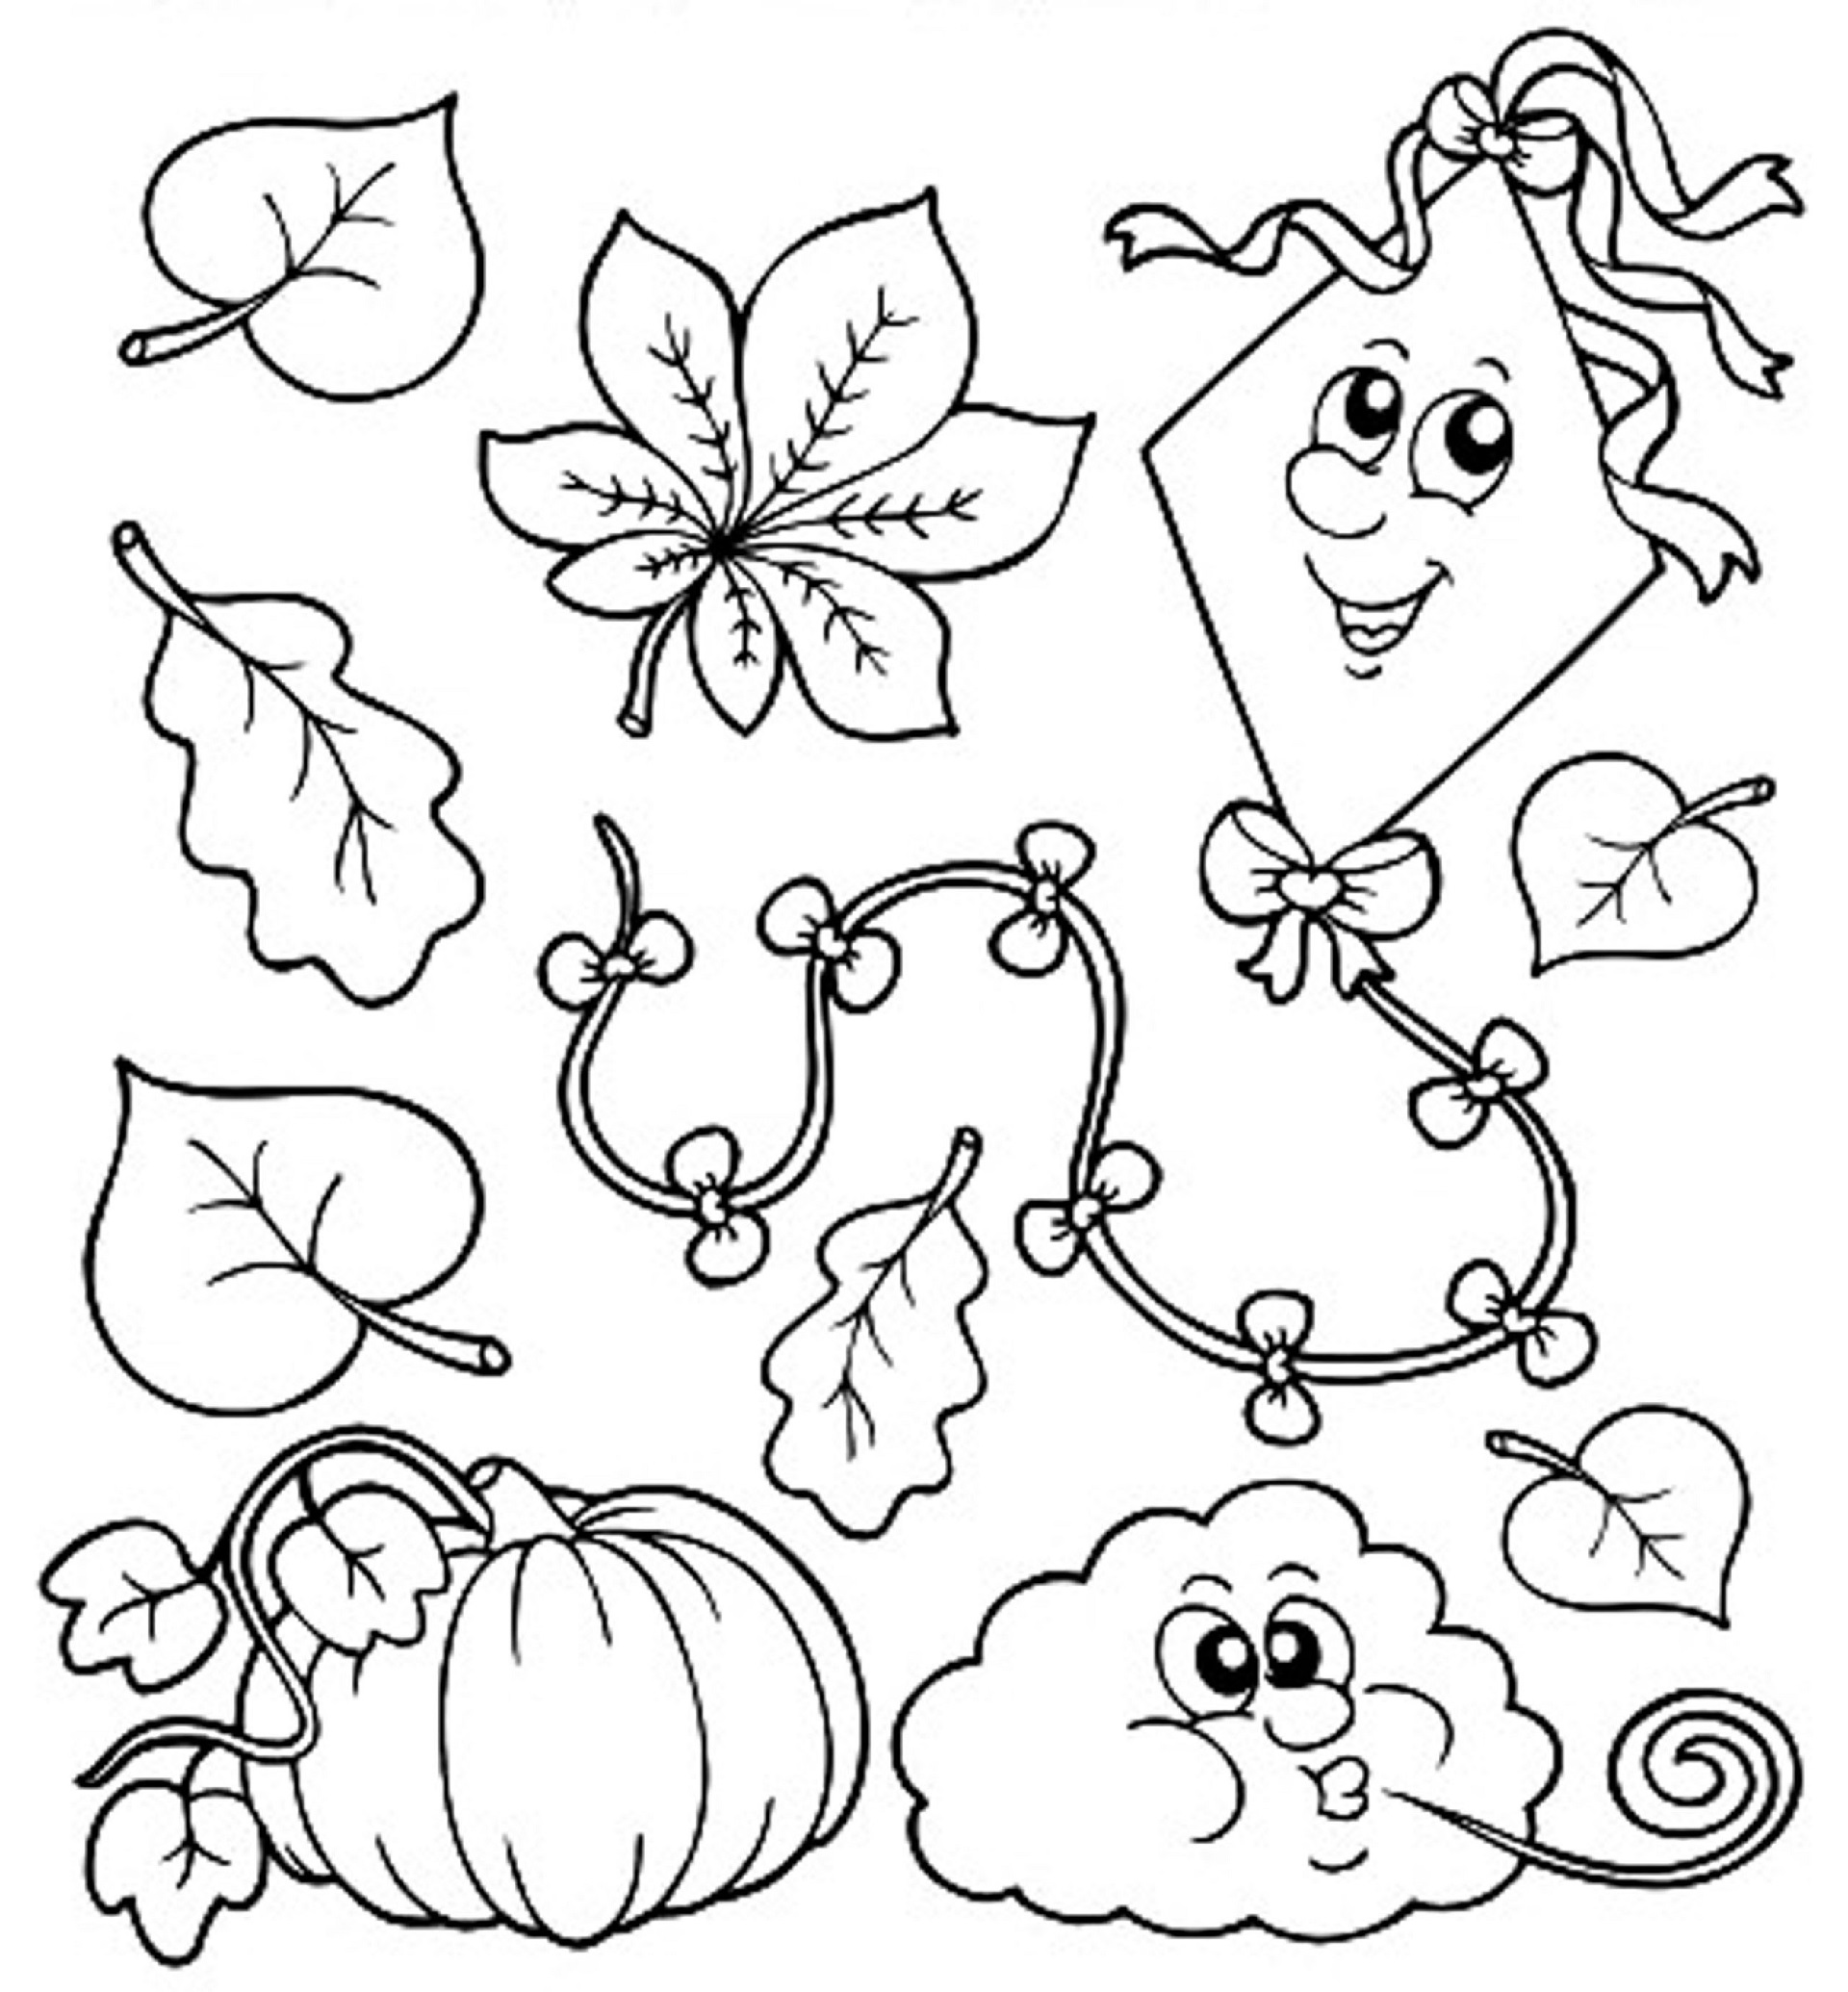 fall coloring pages for preschoolers fall coloring pages for kindergarten learning printable for pages fall preschoolers coloring